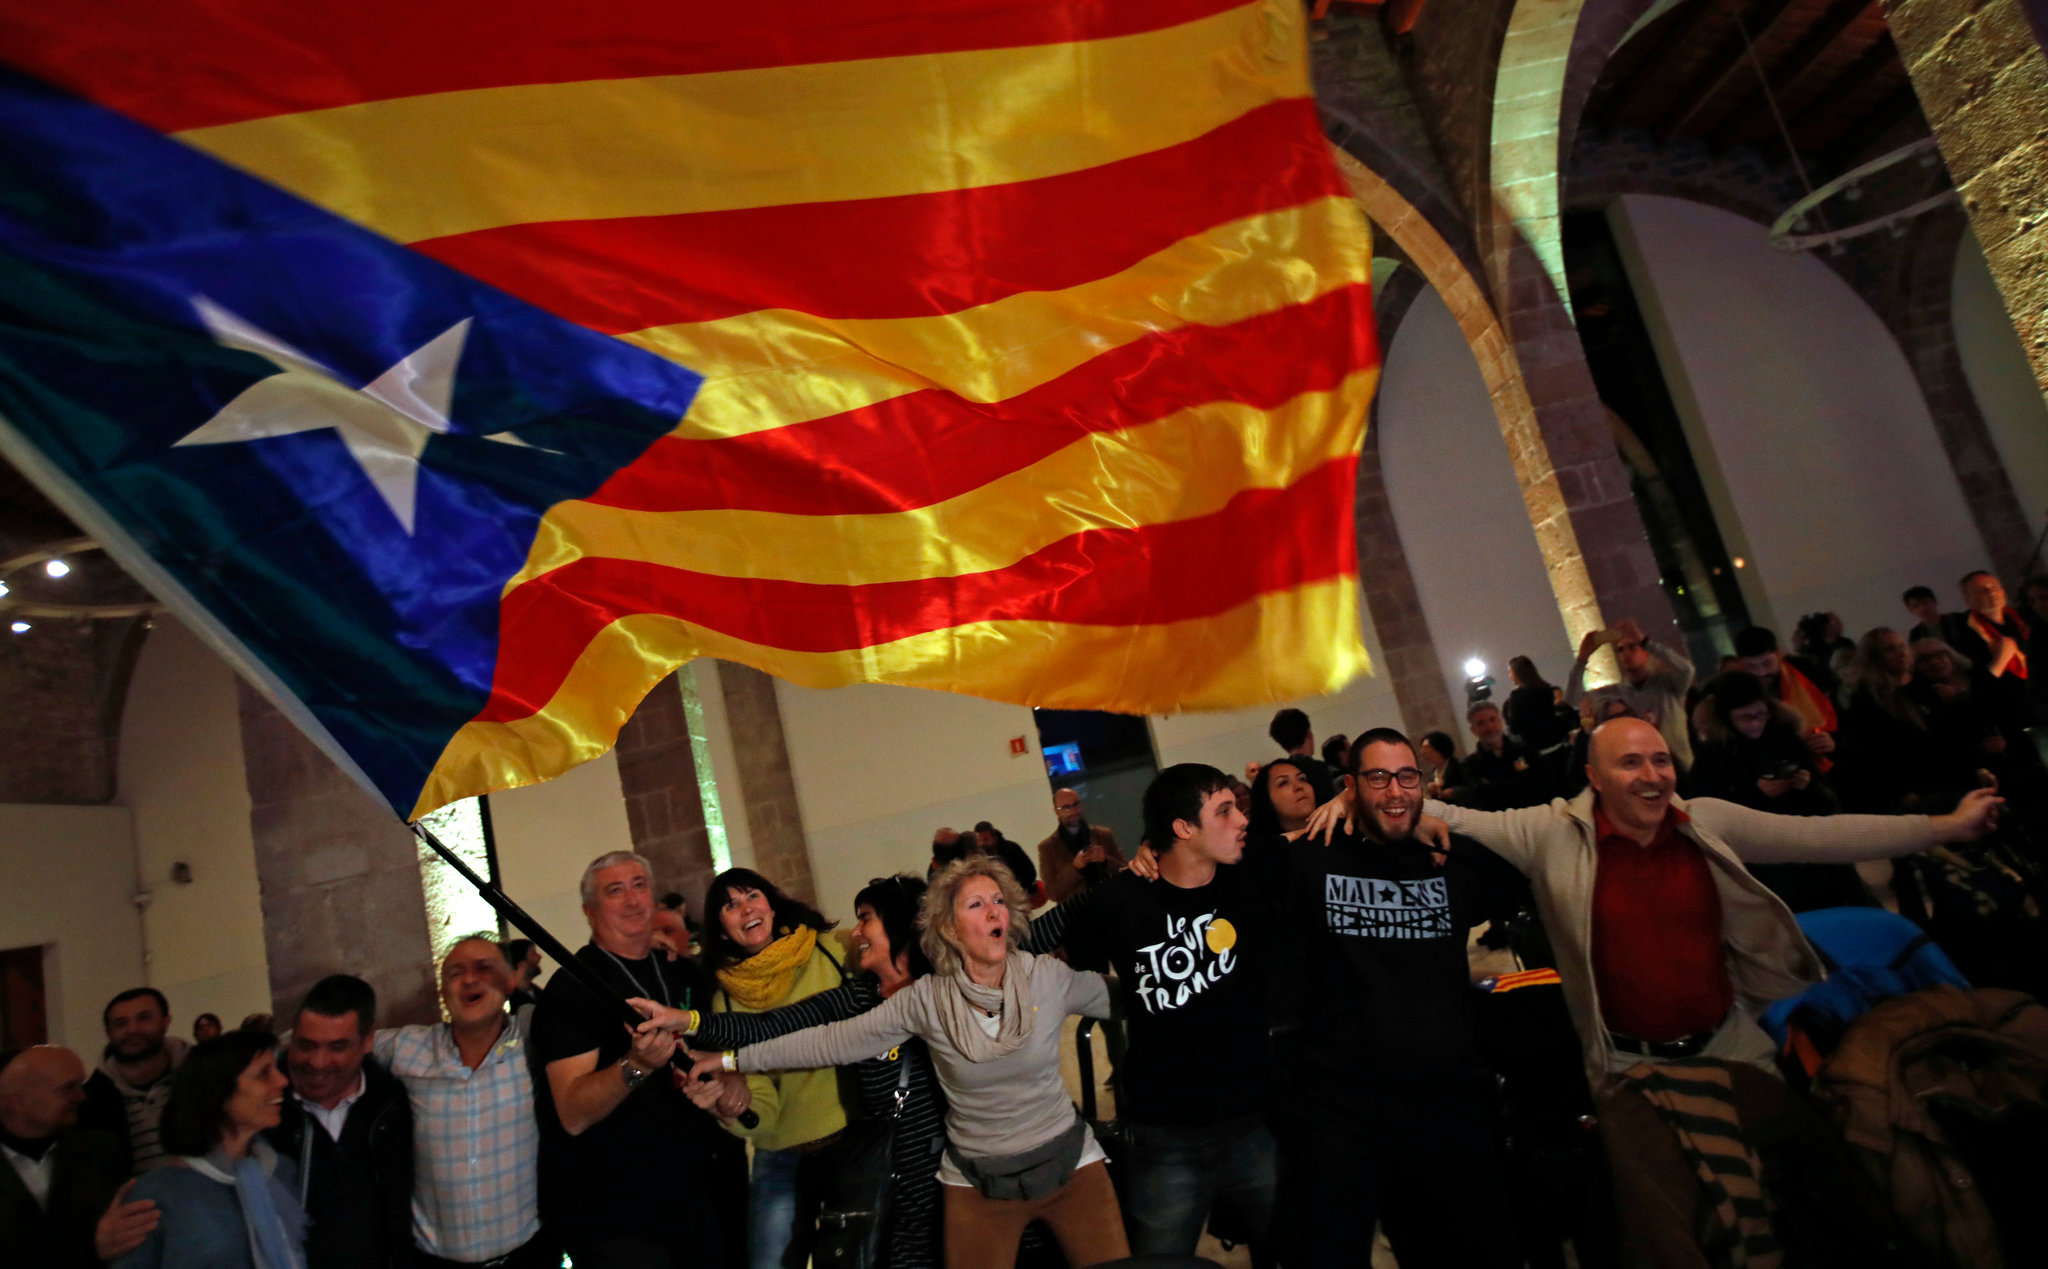 EFA Statement on the Upcoming Catalan Election